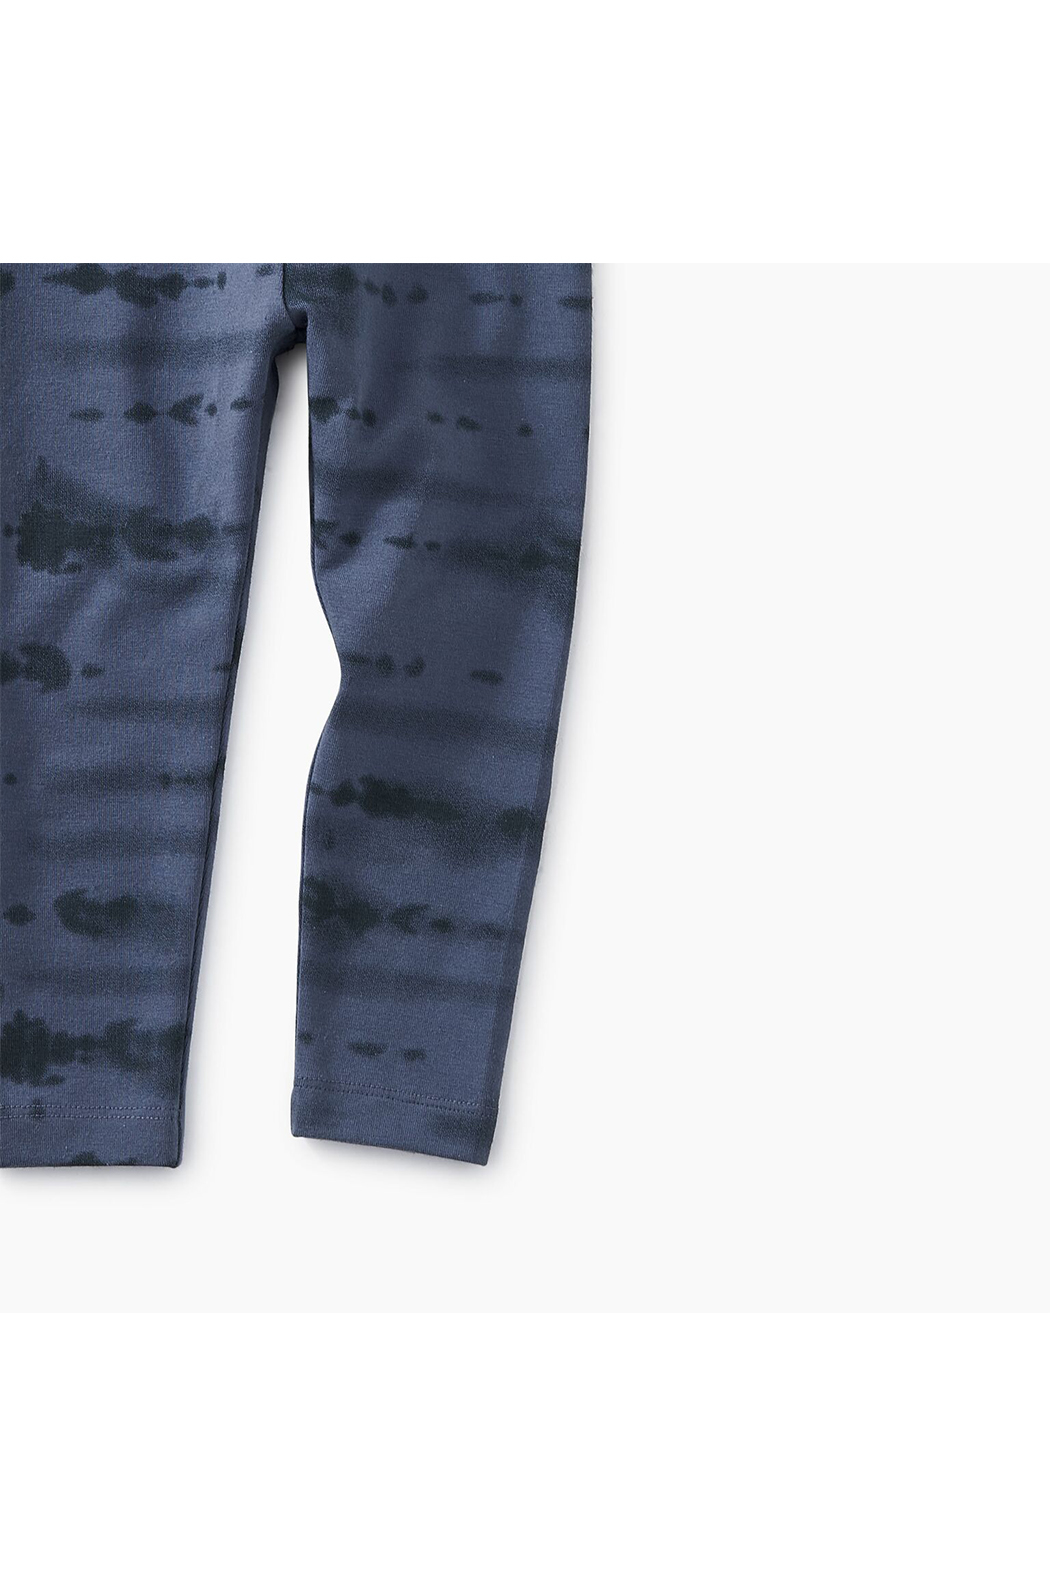 Tea Collection Tie Dye Baby Leggings - Front Full Image